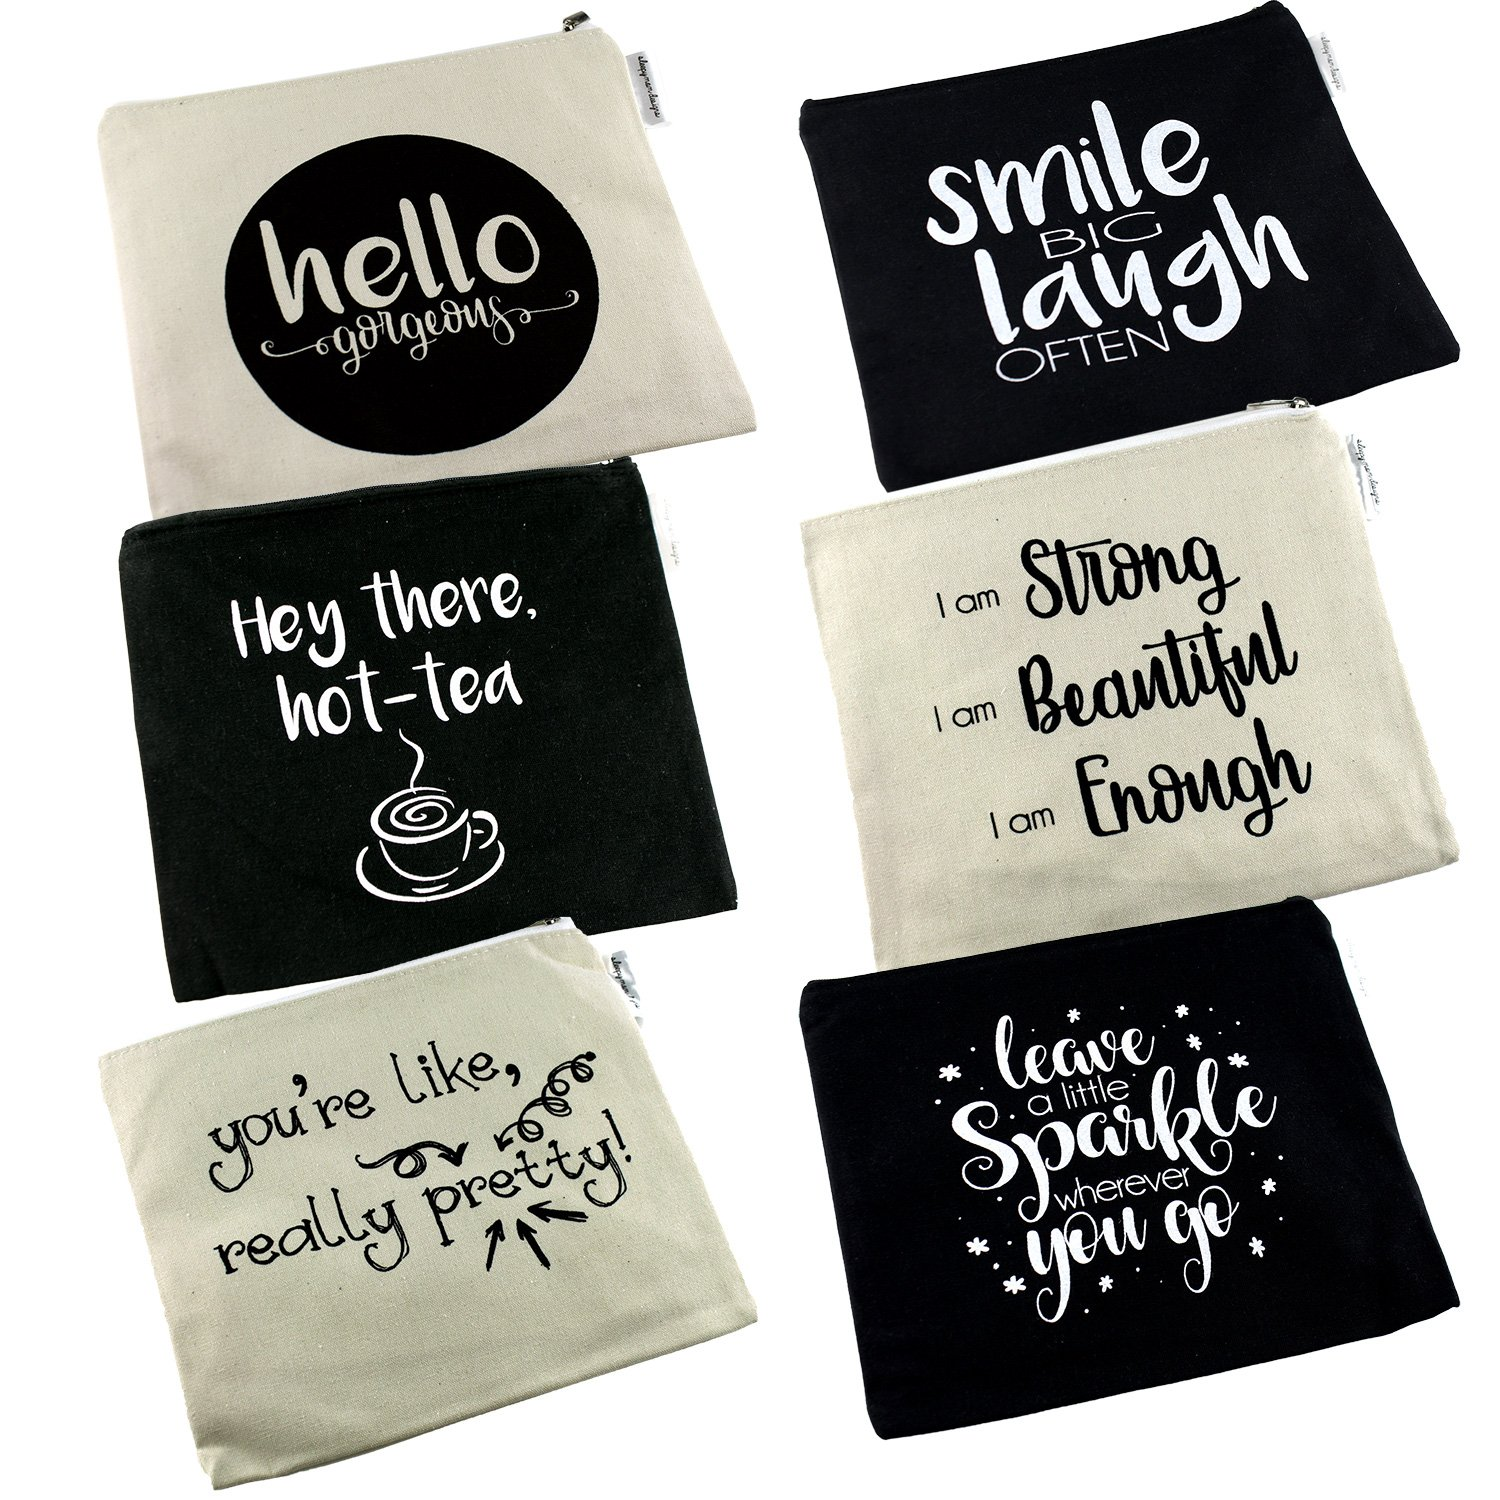 Positive Messages Canvas Cosmetic Bag and Travel Makeup Zipper Pouch Organizer Set For Wedding Bridesmaids or Direct Marketing Gifts 8.5 x 7.5 Inches (6 Pack)